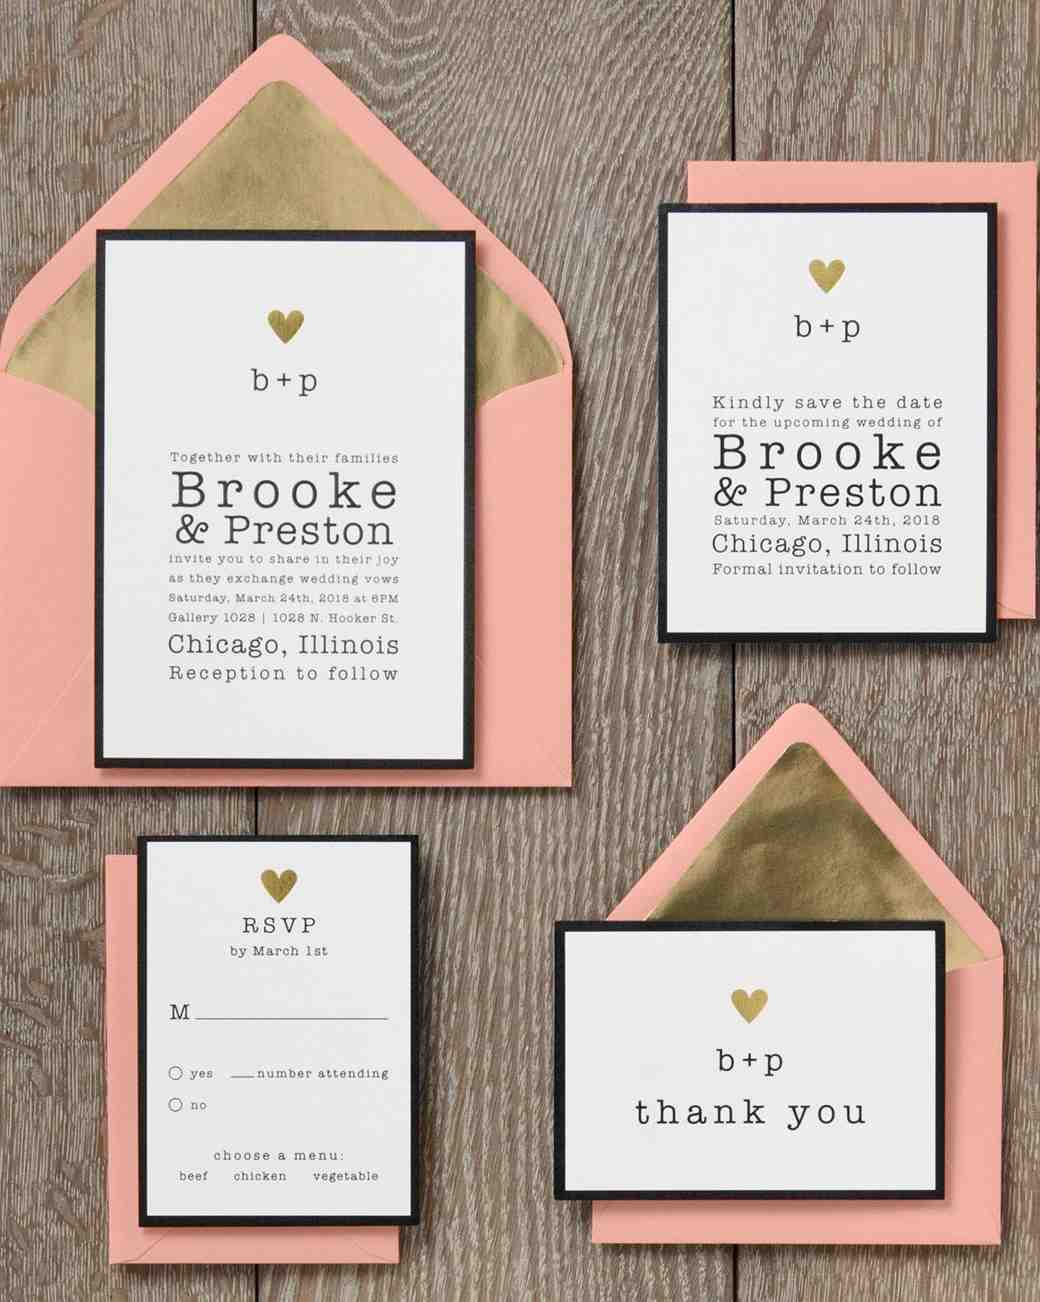 6-papersource-personalize-thank-you-cards.jpg (skyword:336999)